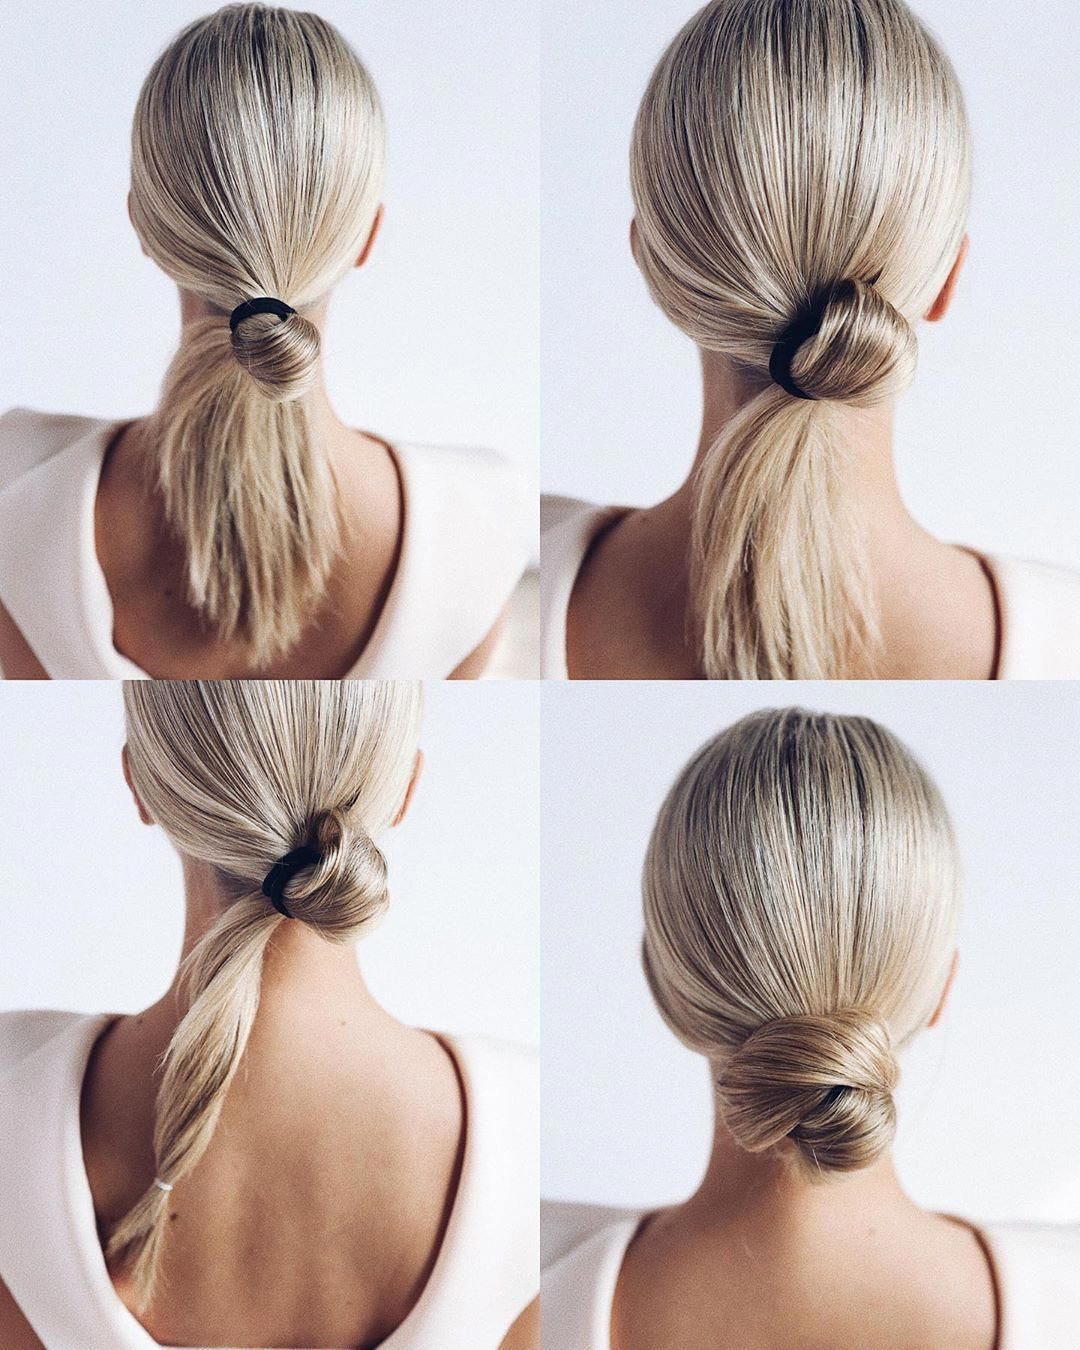 This Bride Hairstyles Updo Is Also Perfer For Soft Updo Wedding The Celebrity Wedding Hair Celebrity Wedding Hair Easy Homecoming Hairstyles Long Hair Styles